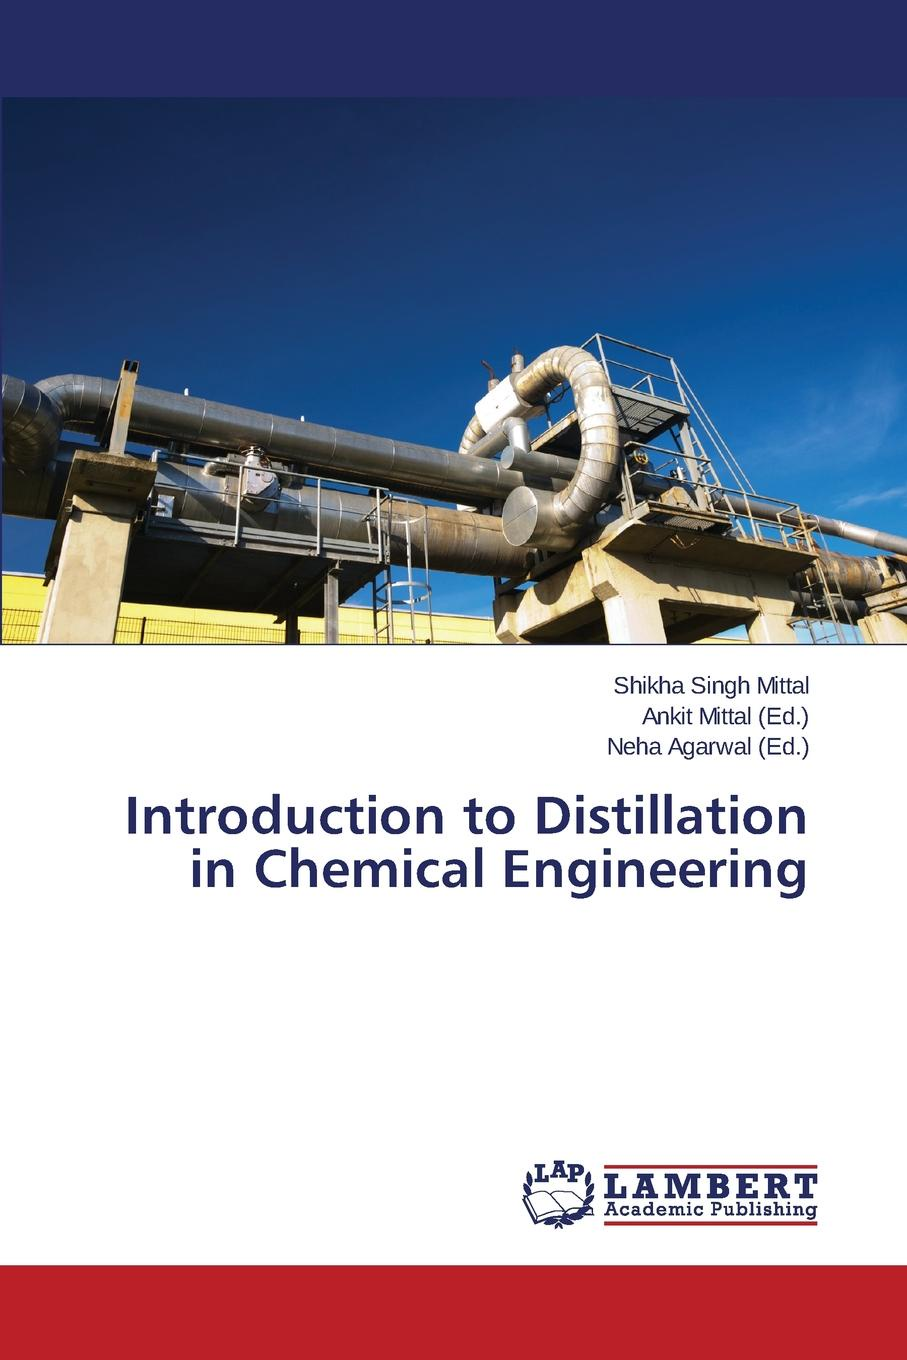 Singh Mittal Shikha Introduction to Distillation in Chemical Engineering liquid distributors used at the point of injection to assure a homogenous mixture working together with ntf valves